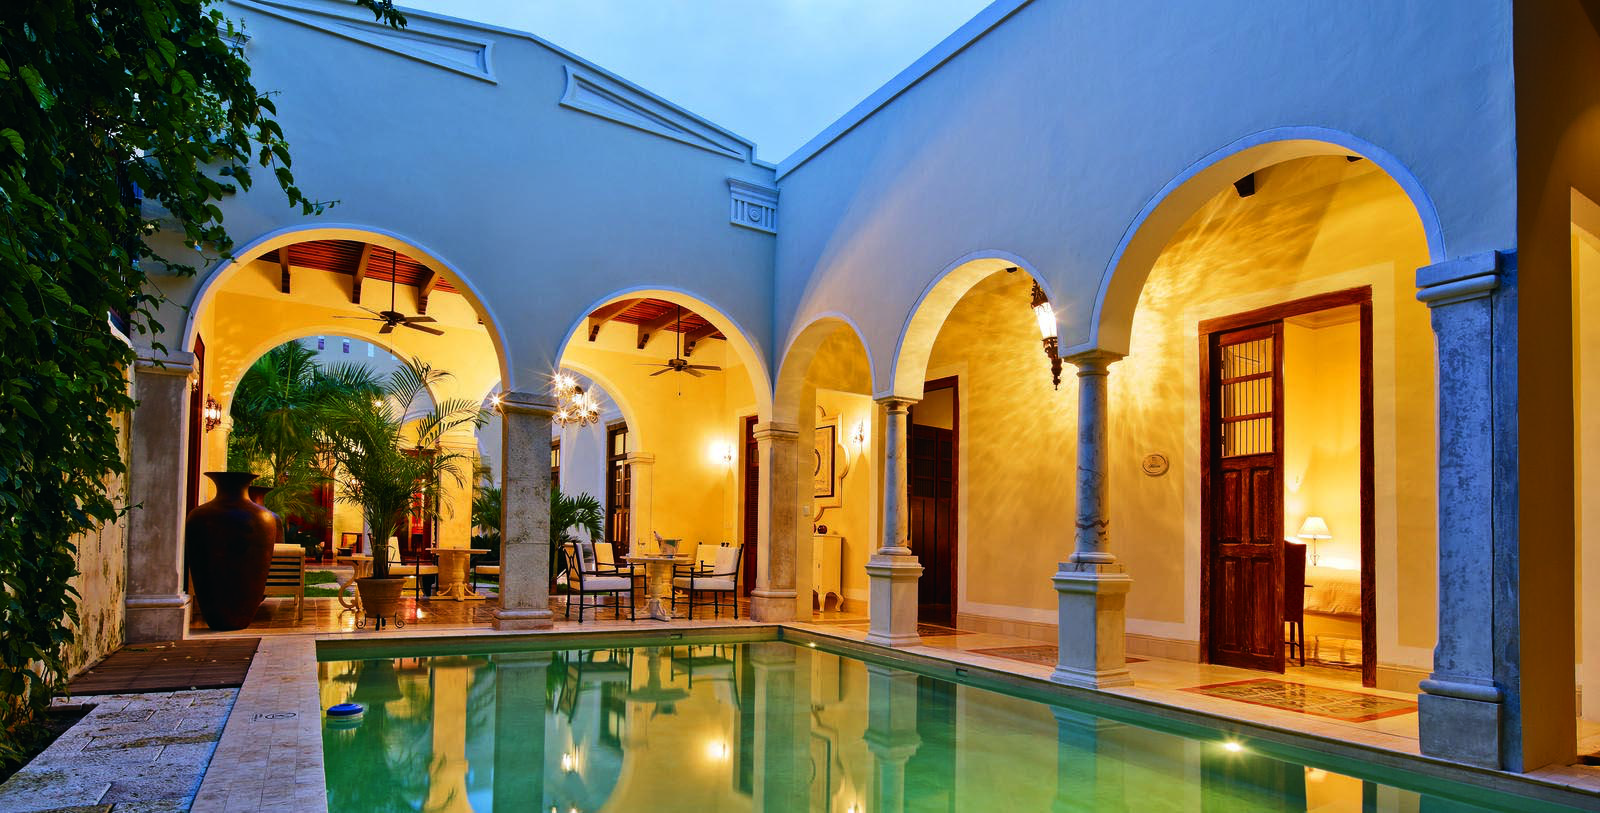 Image of outdoor courtyard Casa Lecanda, 1900s, Member of Historic Hotels Worldwide, in Merida, Mexico, Explore